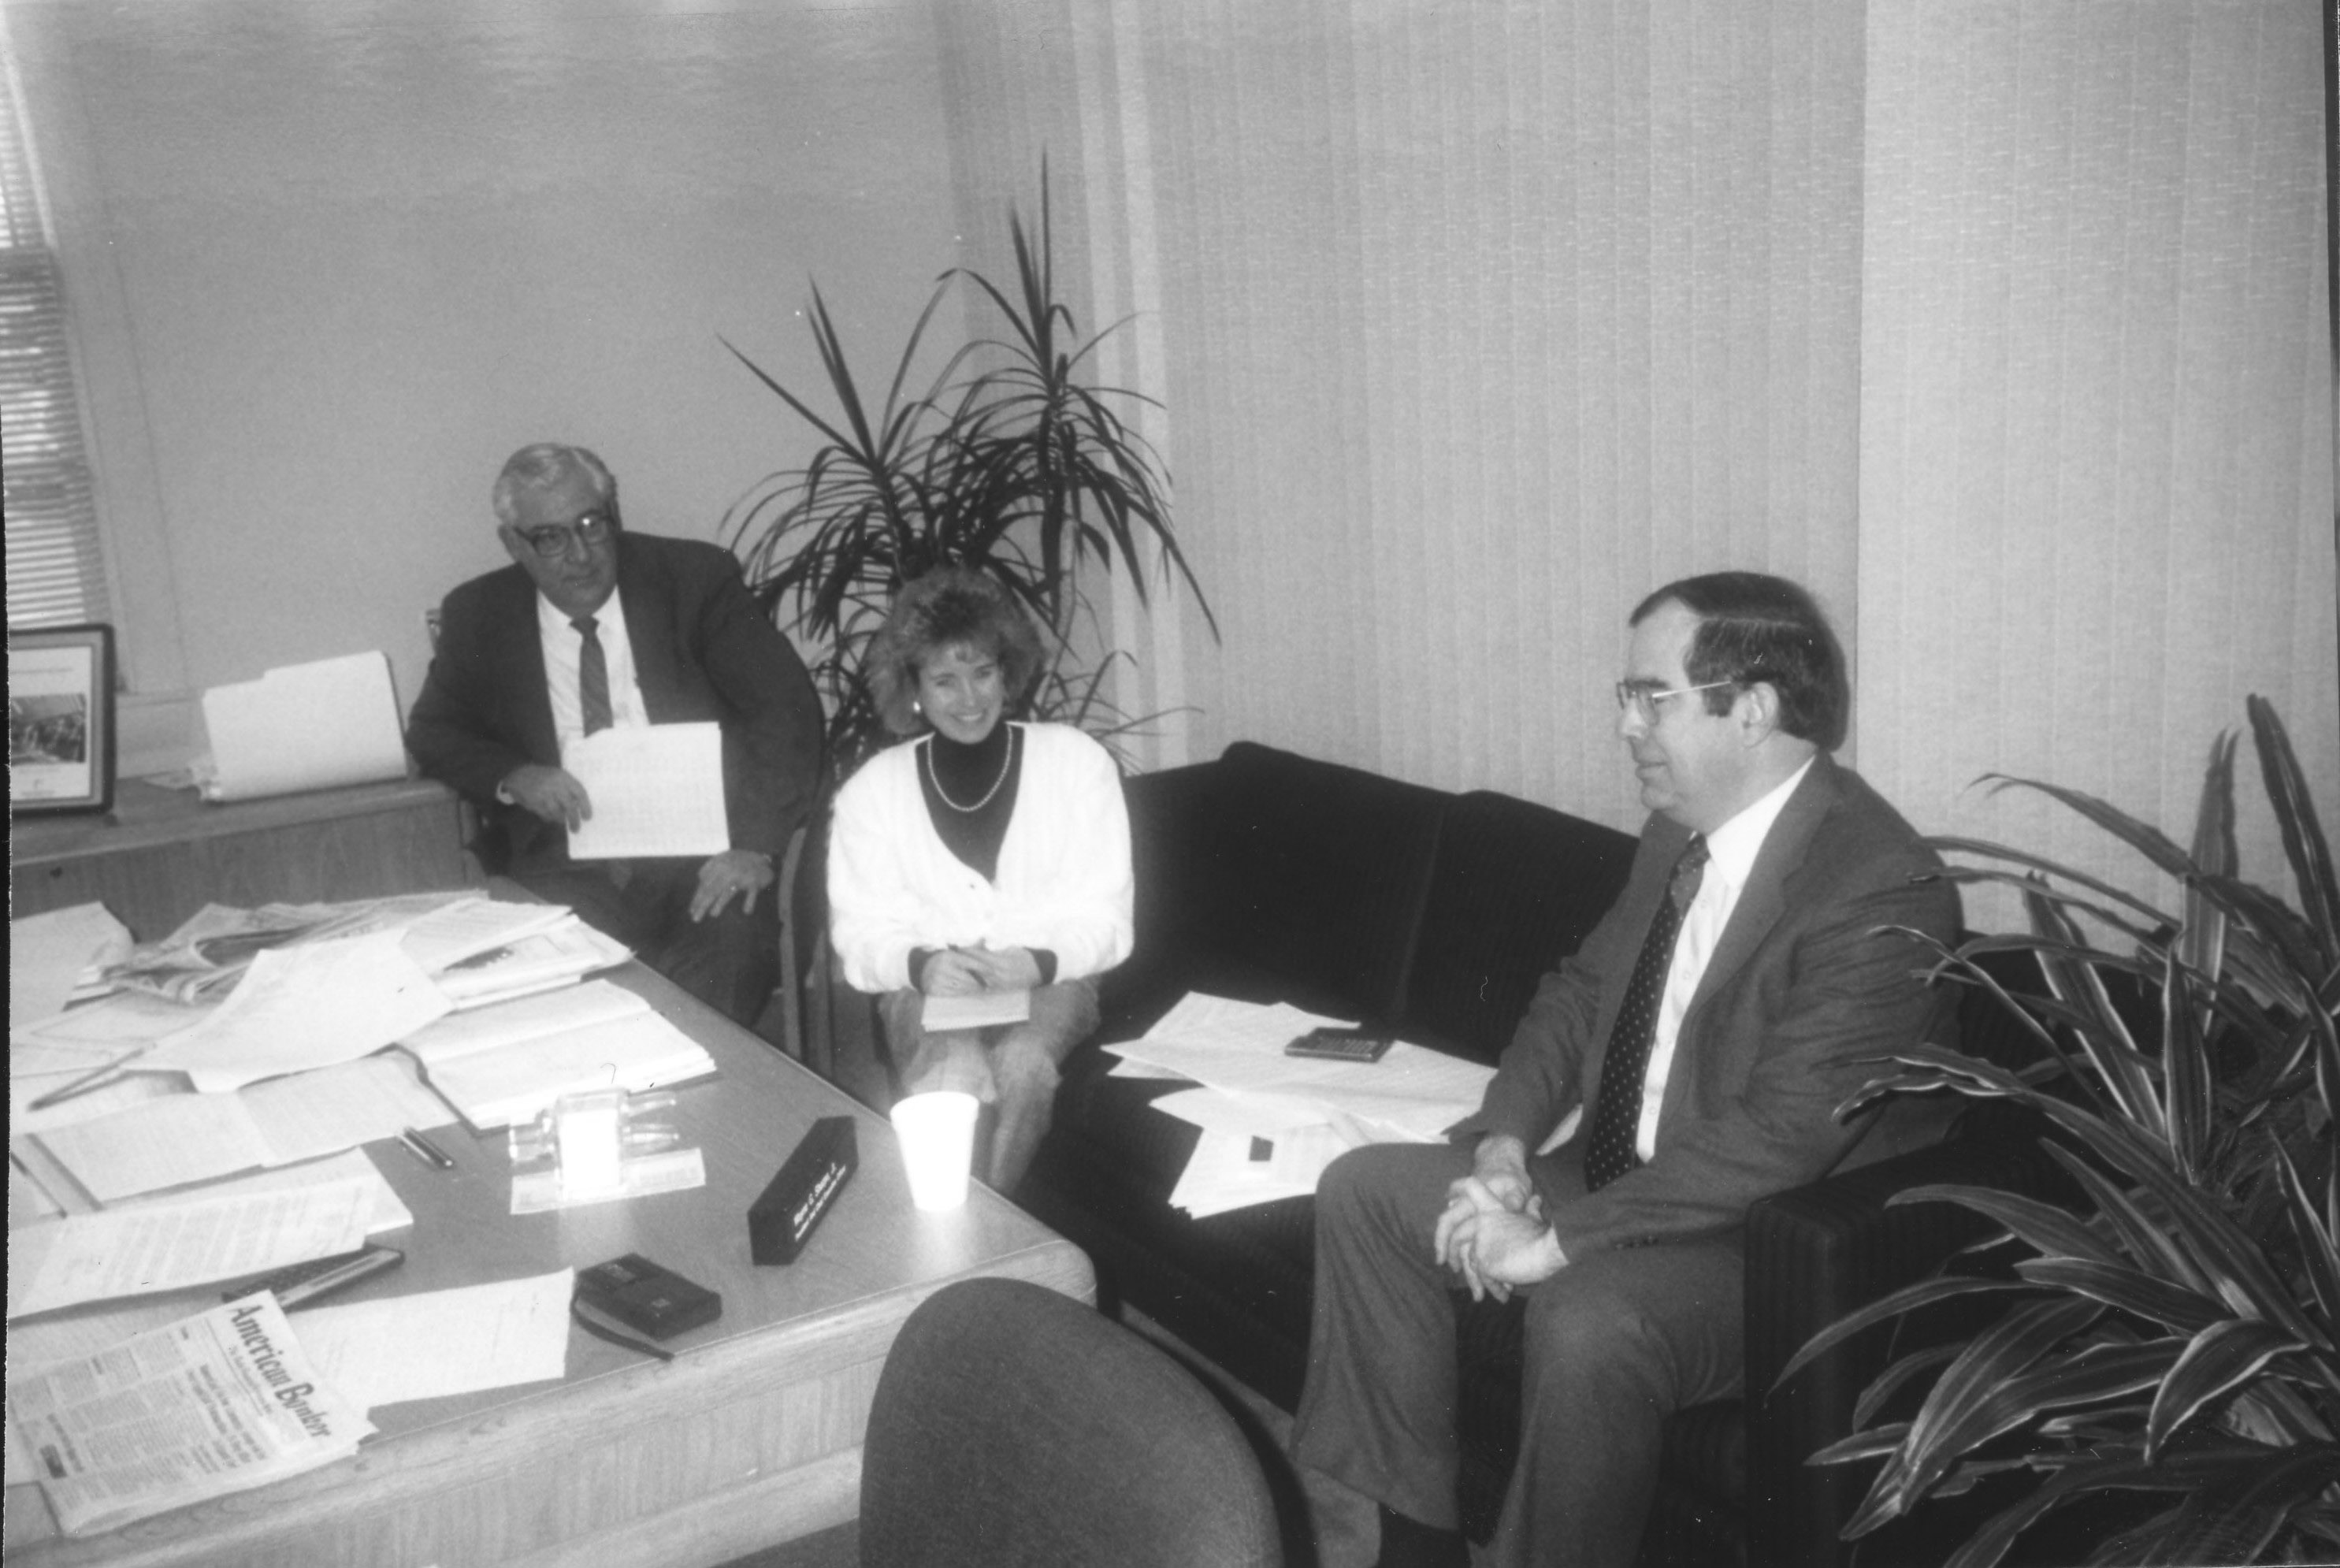 Image of Tom Deary (right) at meeting of New England Labor News